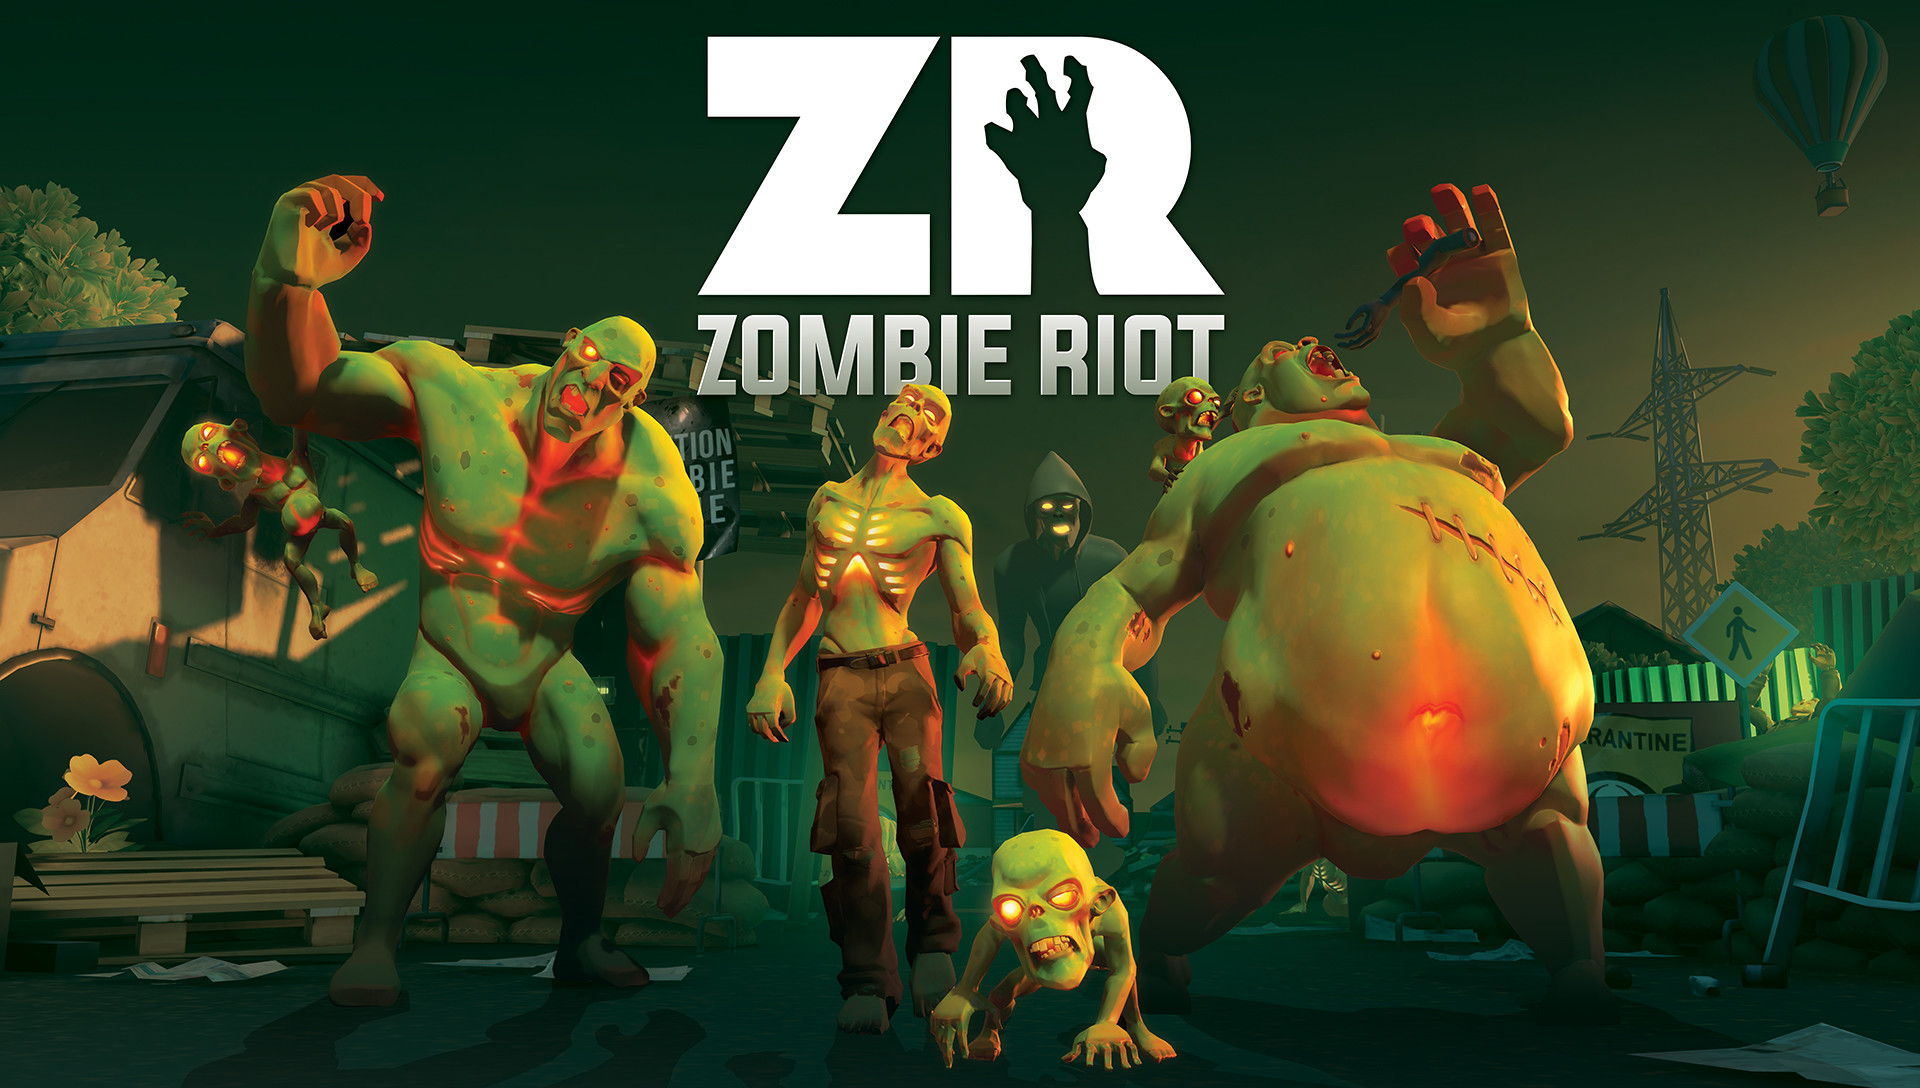 Promotional Poster Shots - I was responsible for Offline Rendering of Zombies, Screen Capture of Environment, Post,Workup, Composition and Lighting, as well as weapons and environment objects and materials.